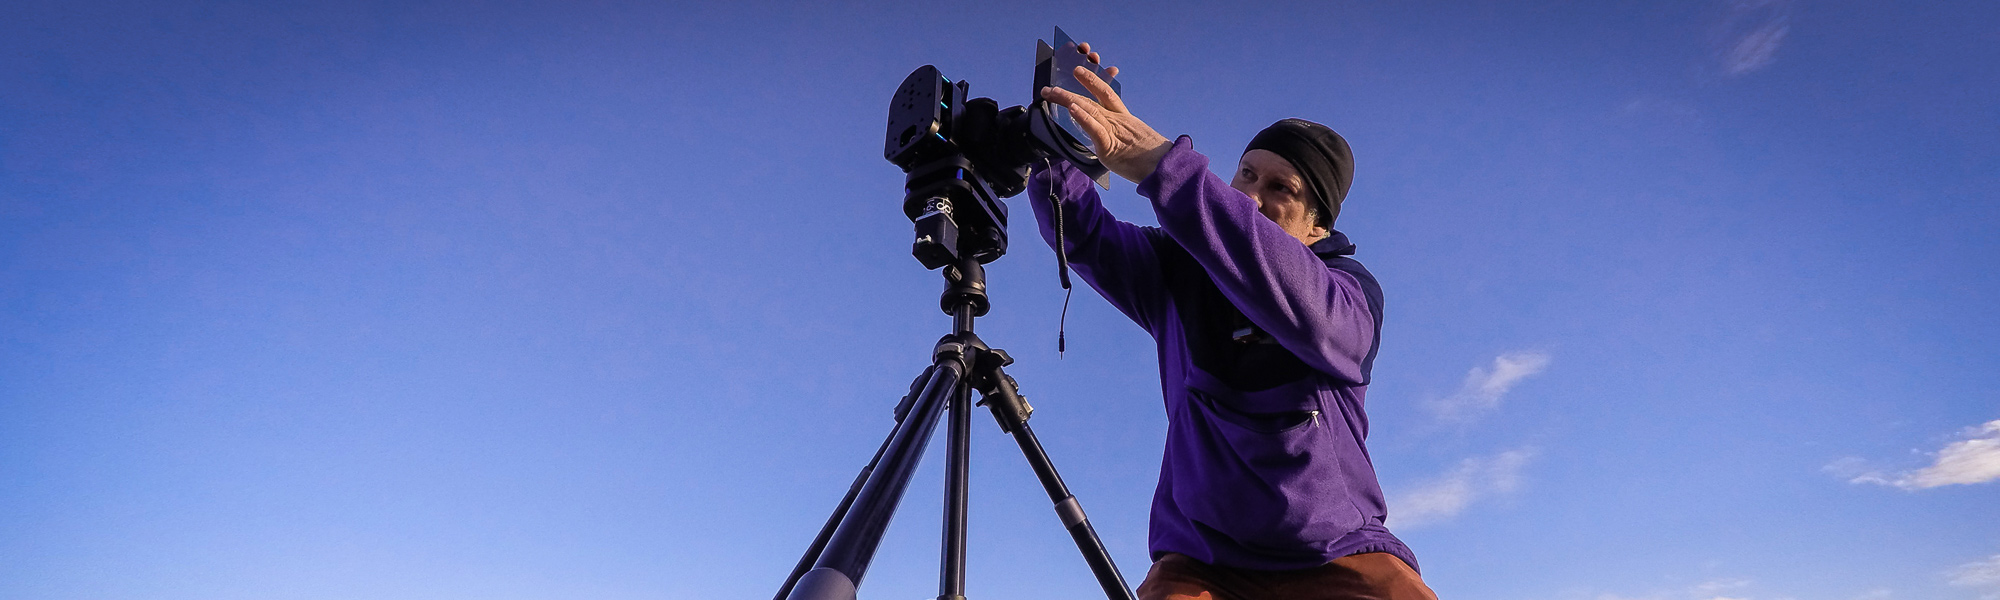 Featured Creative: Time Lapse Photographer Stephen Patience